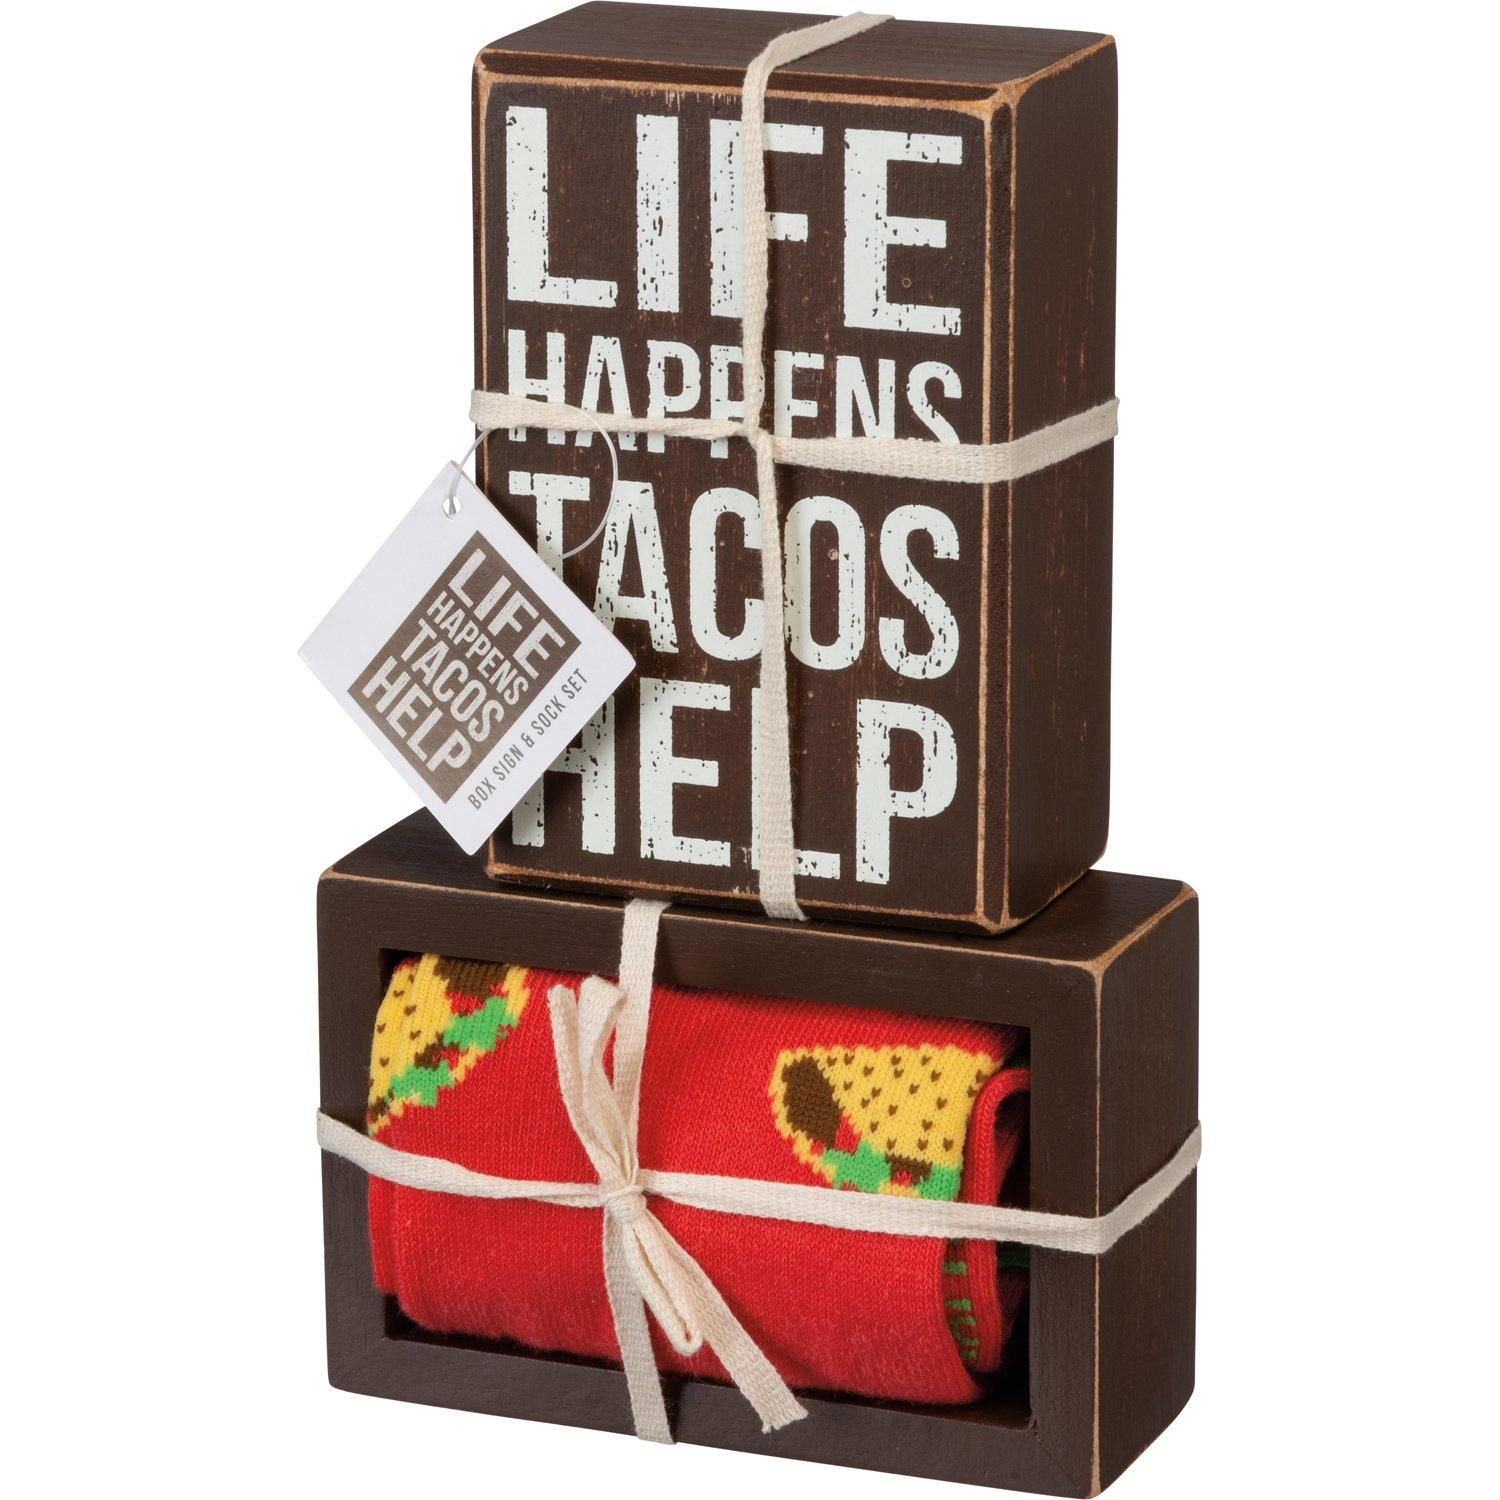 Primitives By Kathy - Life Happens Tacos Help - Box Sign